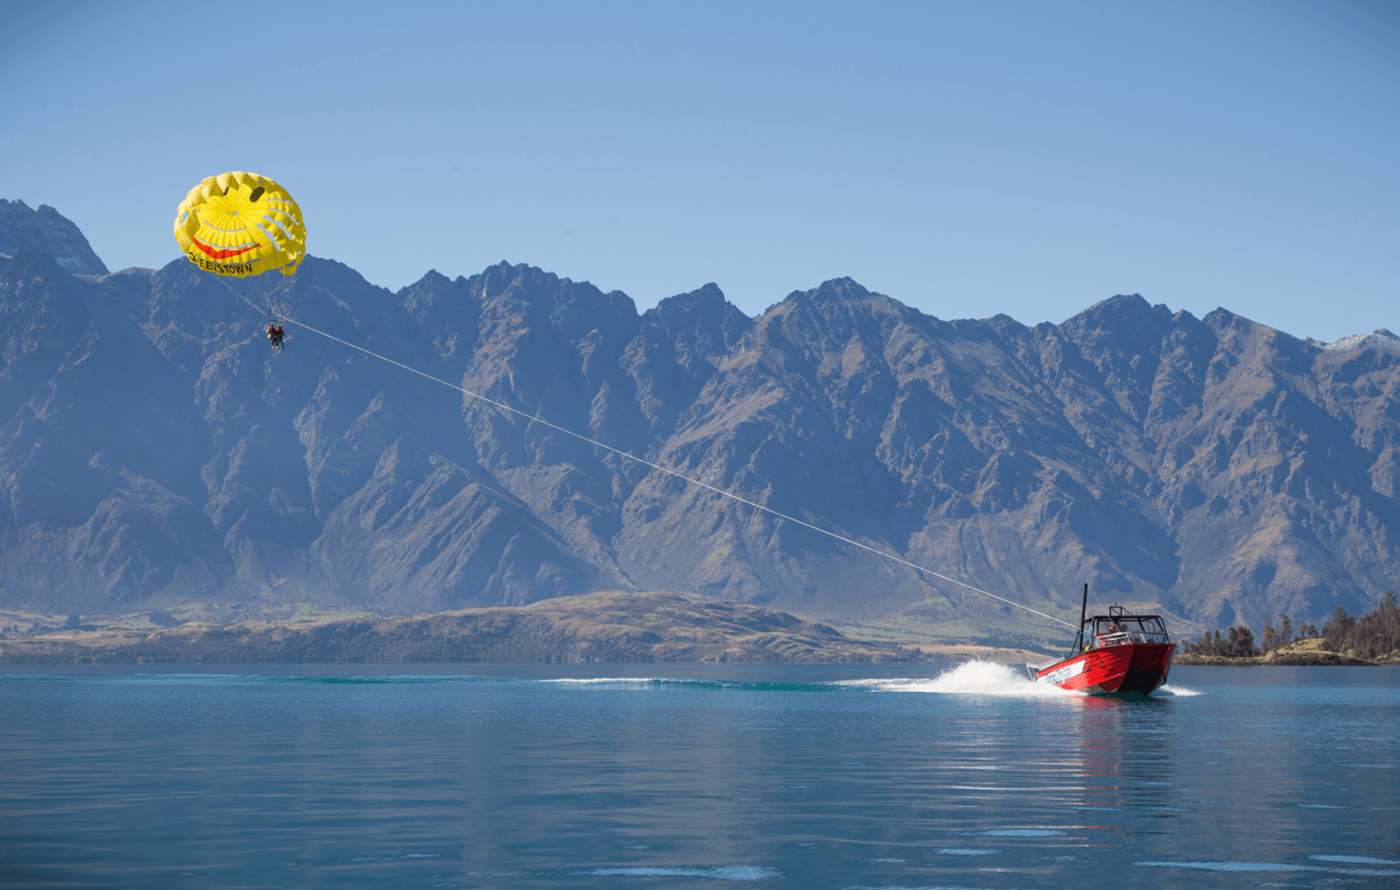 Boat towing a parasail in front of the remarkables